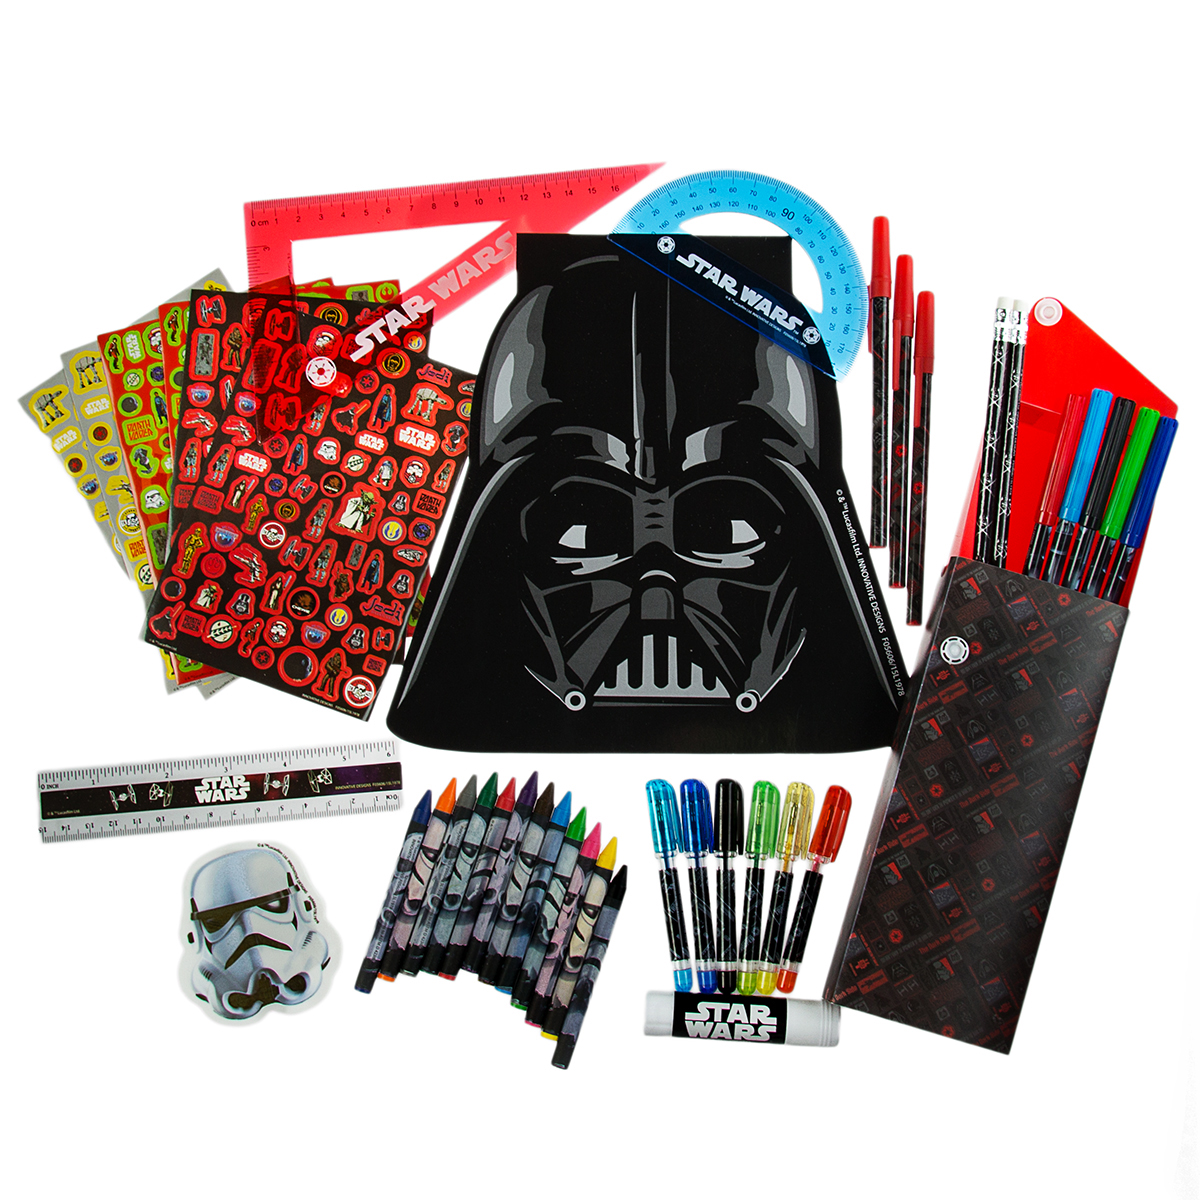 200pc Star Wars Ultimate Art Set Kids Creative Kit Markers Pens Pencils Notepad by